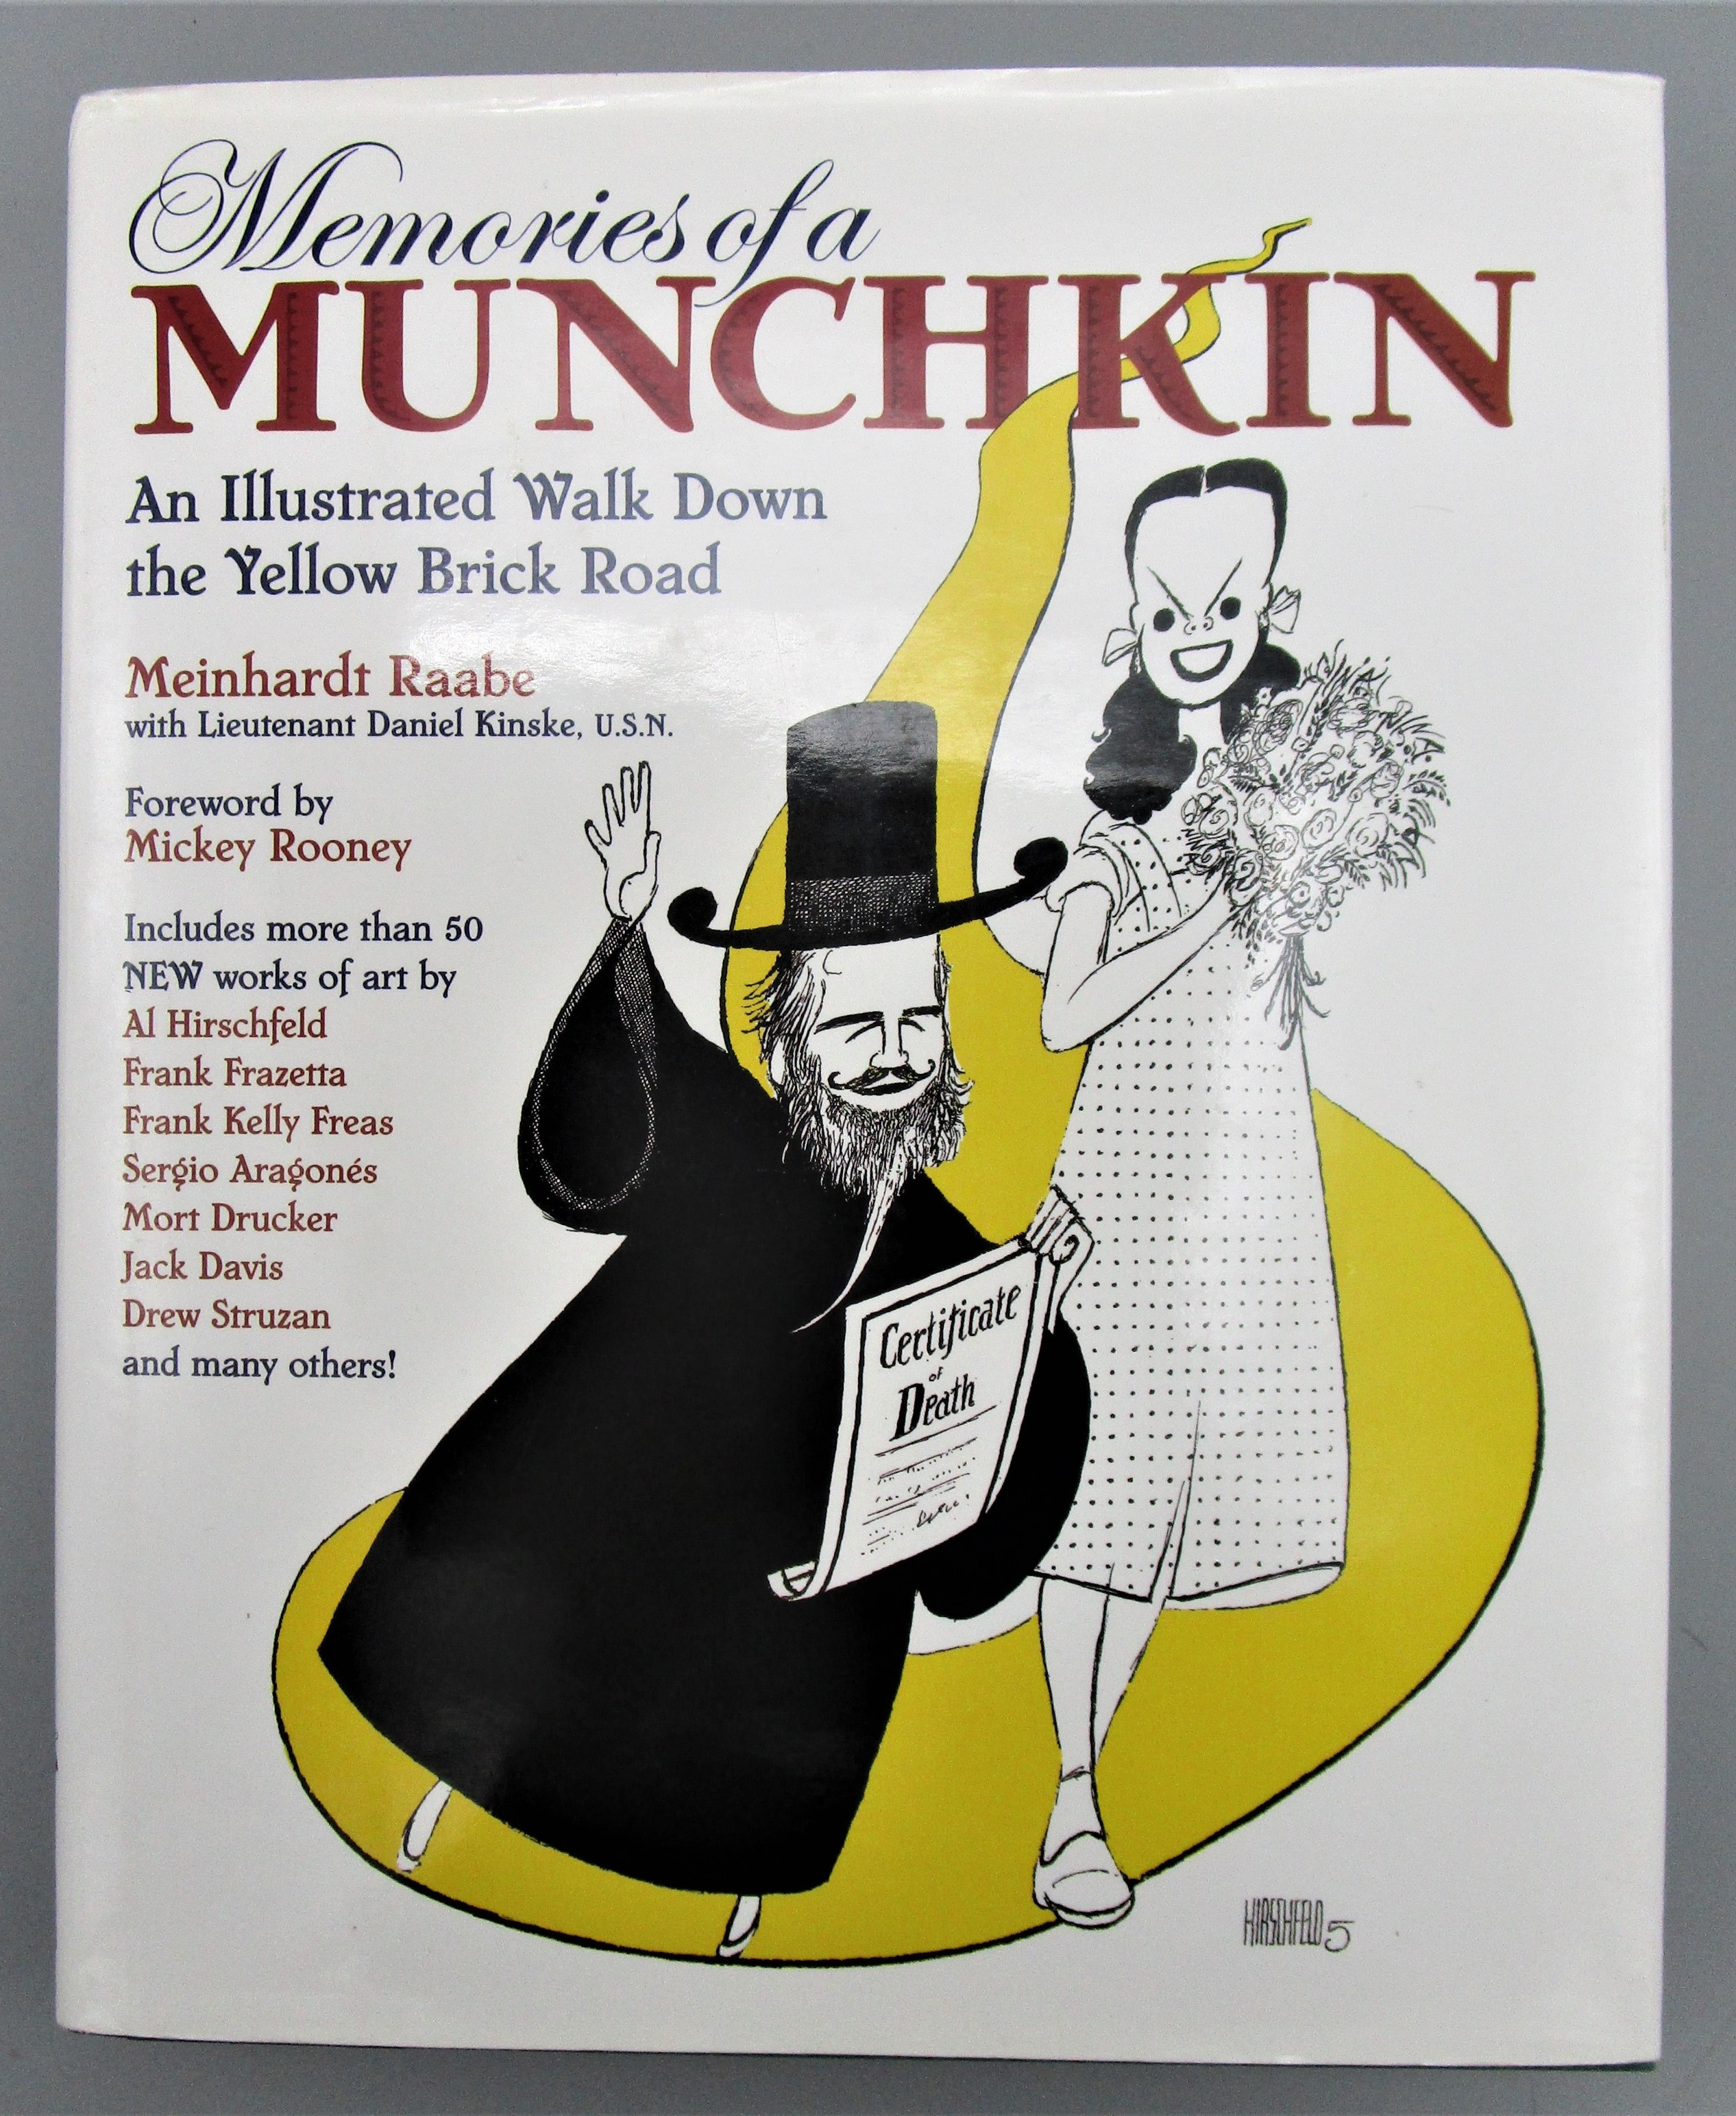 MEMORIES OF A MUNCHKIN: Illustrated Walk Down the Yellow Brick Road, by M. Raabe & D. Kinske - 2005 [Signed]